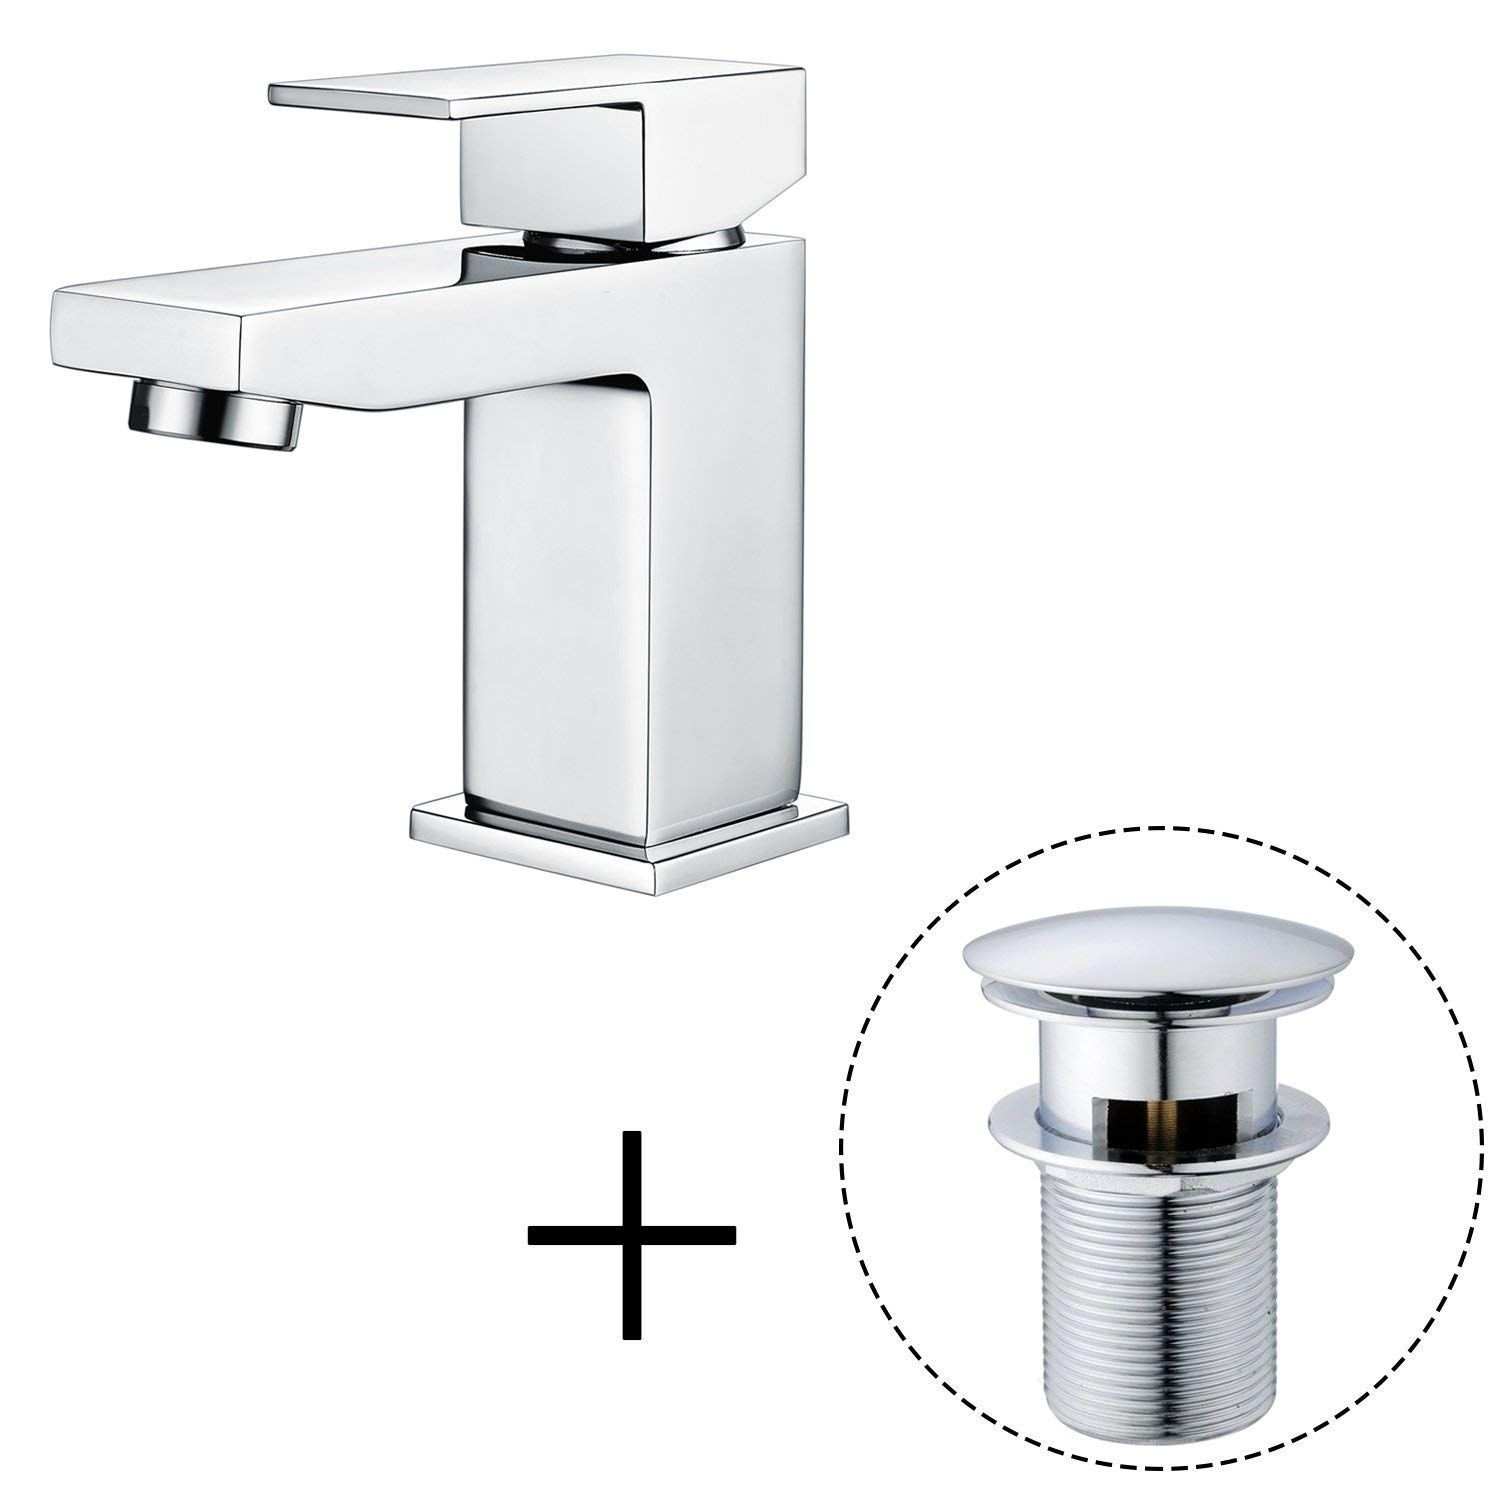 Basin Tap Bathroom Sink Mixer Tap Waterfall Chrome With Pop Up Waste Hapilife Amazon Co Uk Diy Tools Sink Mixer Taps Basin Taps Basin